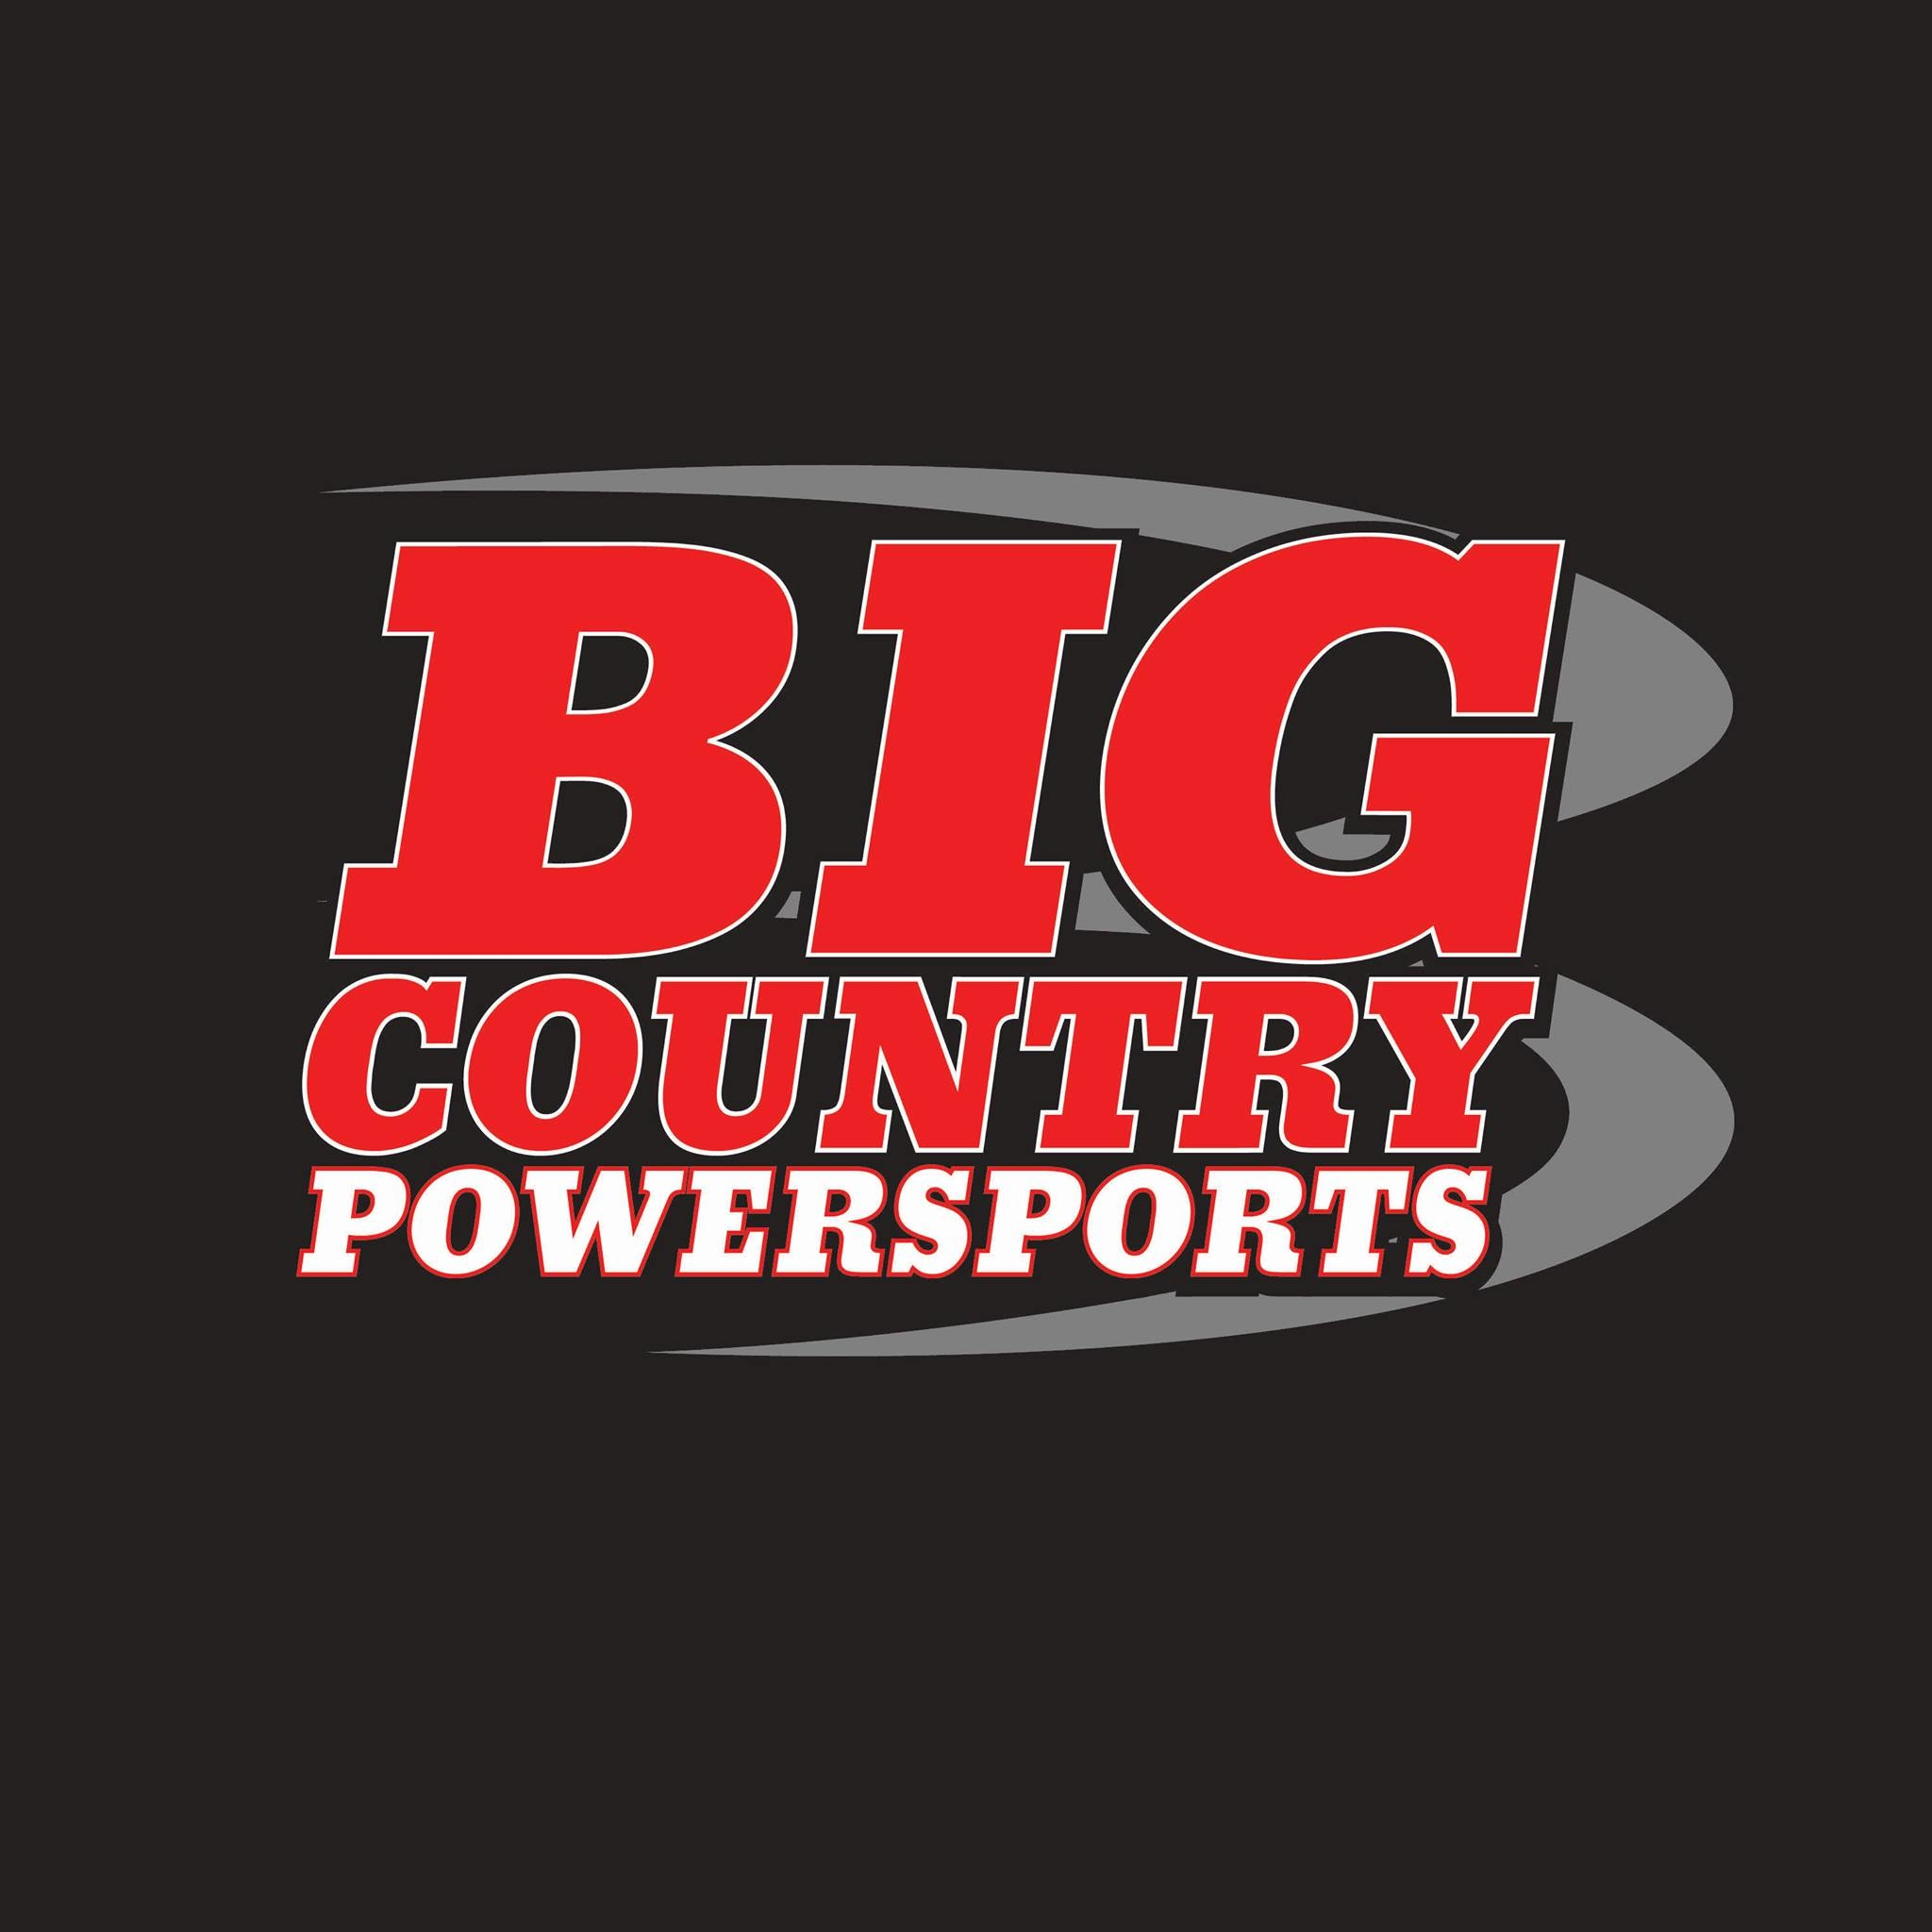 image of the Big Country Powersports